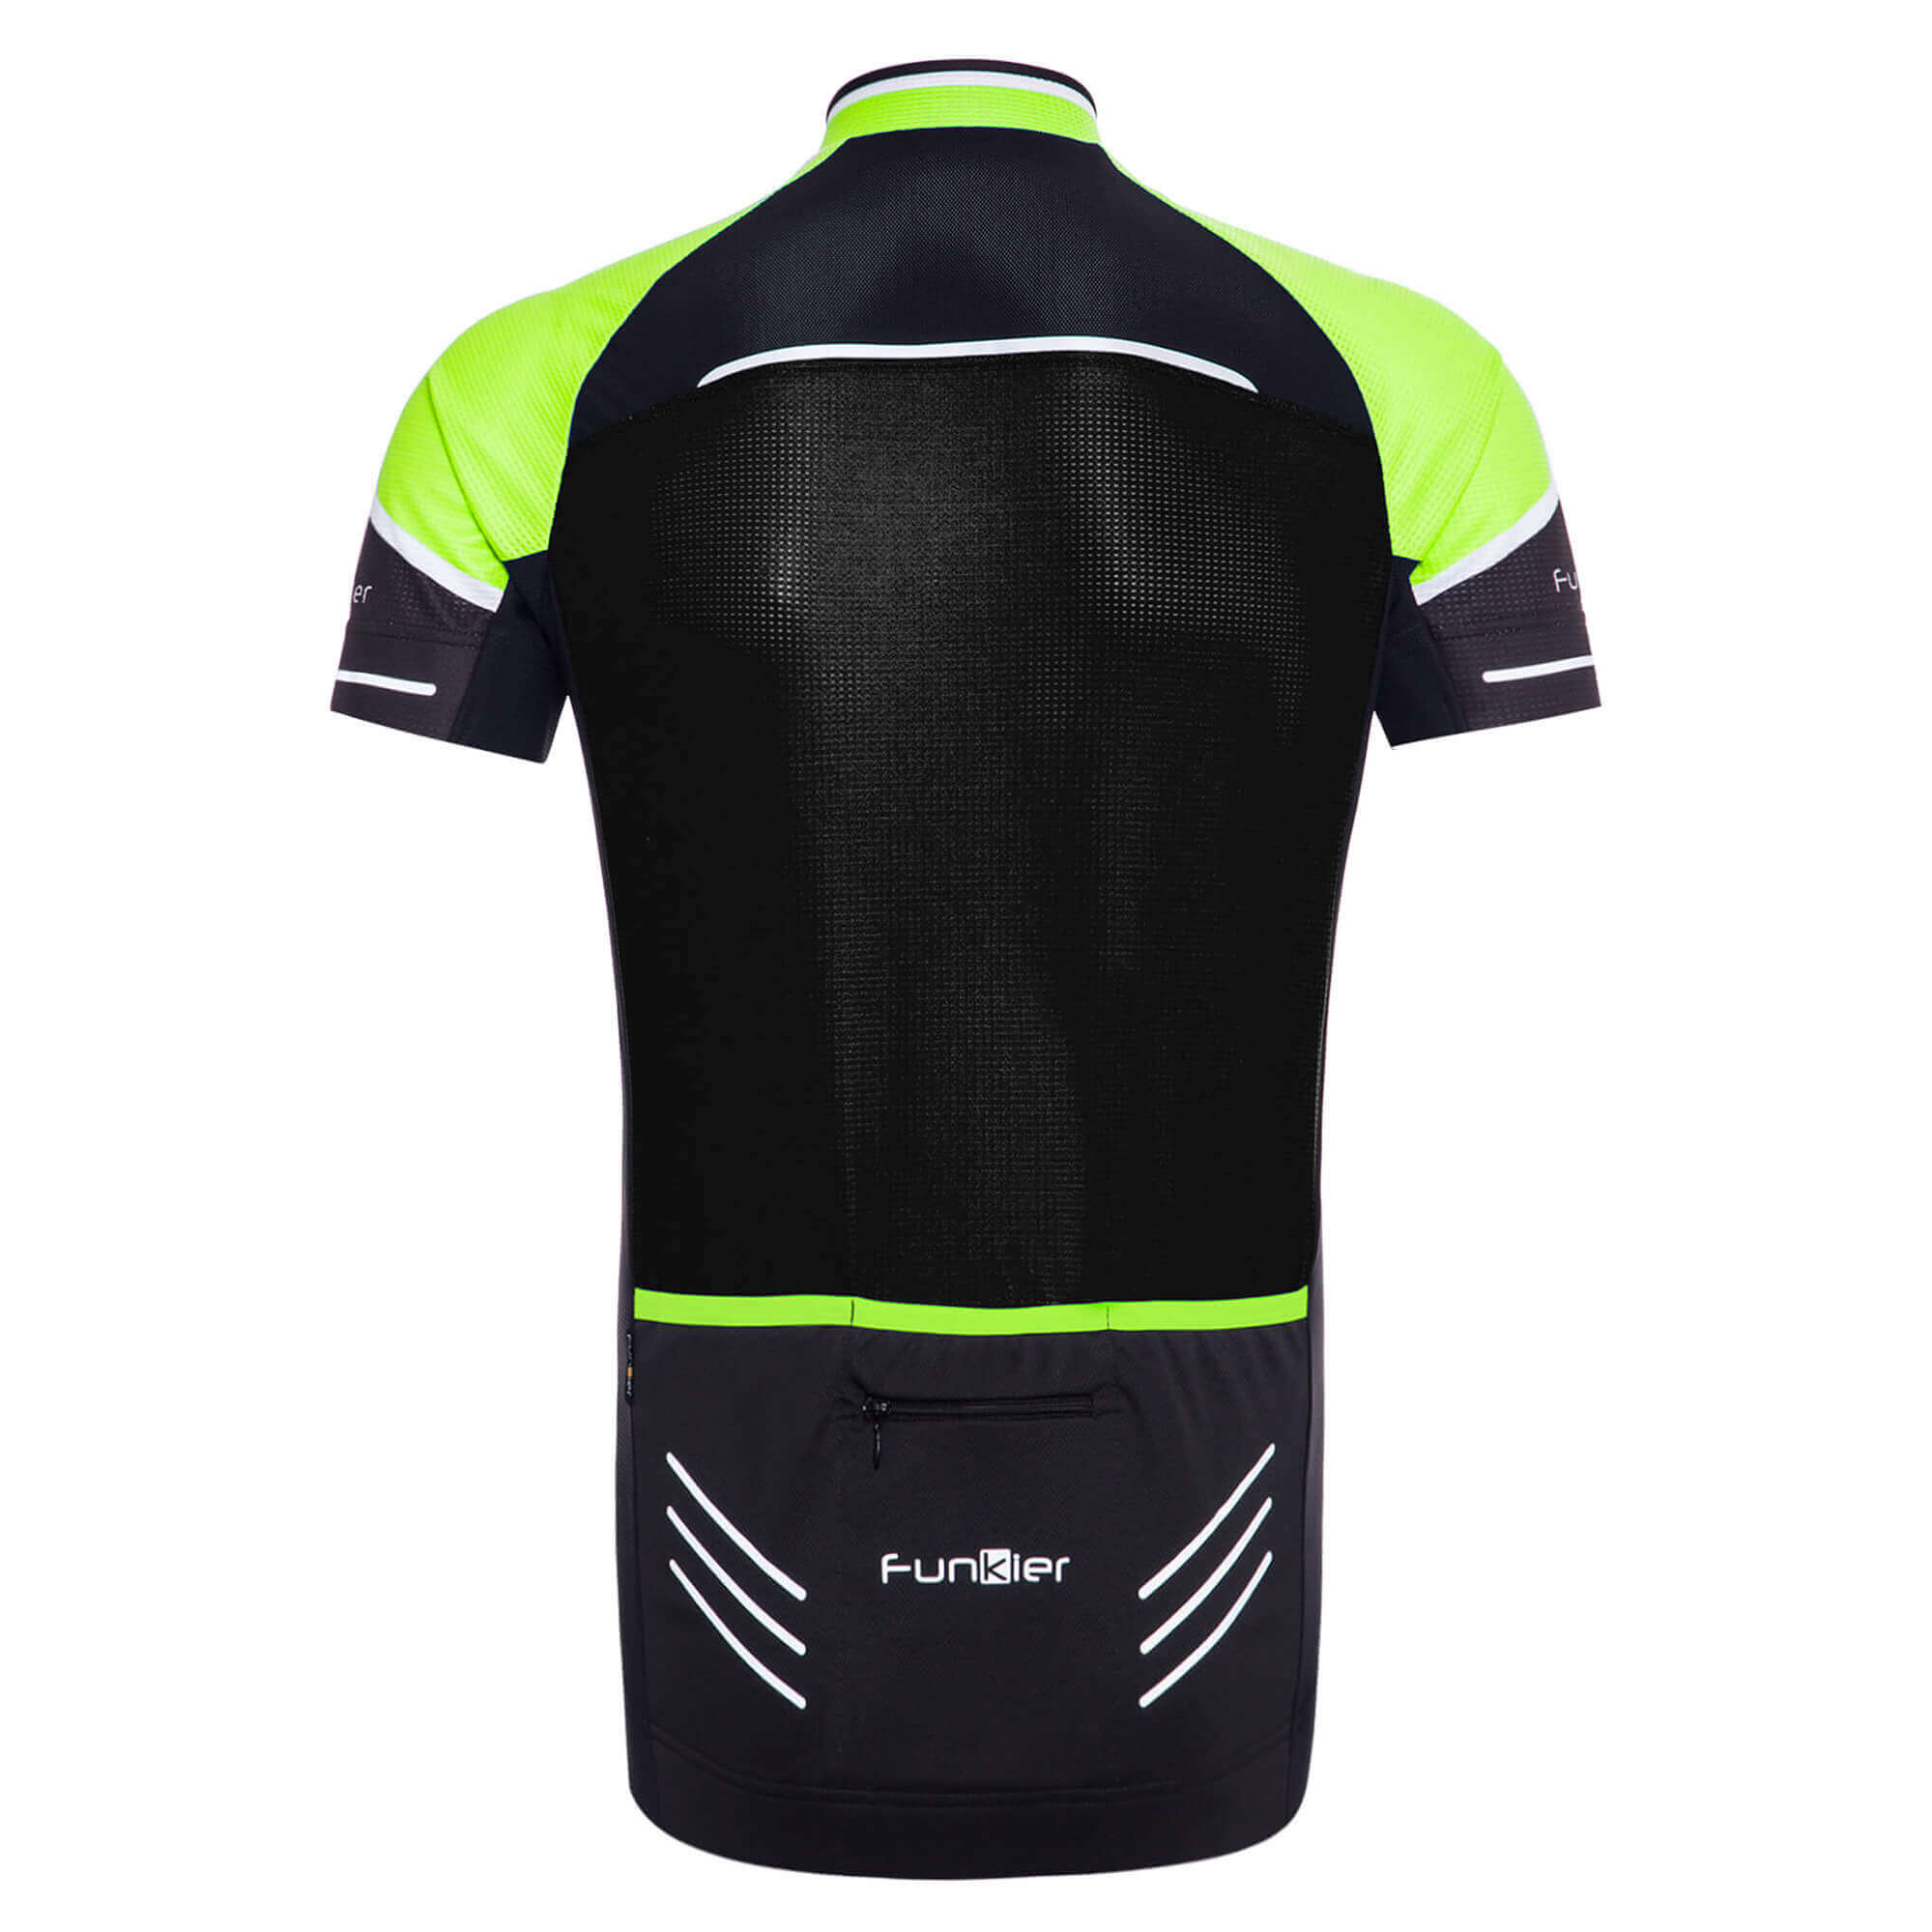 67a995d8cad Funkier - High performance cycling apparel at an affordable price.